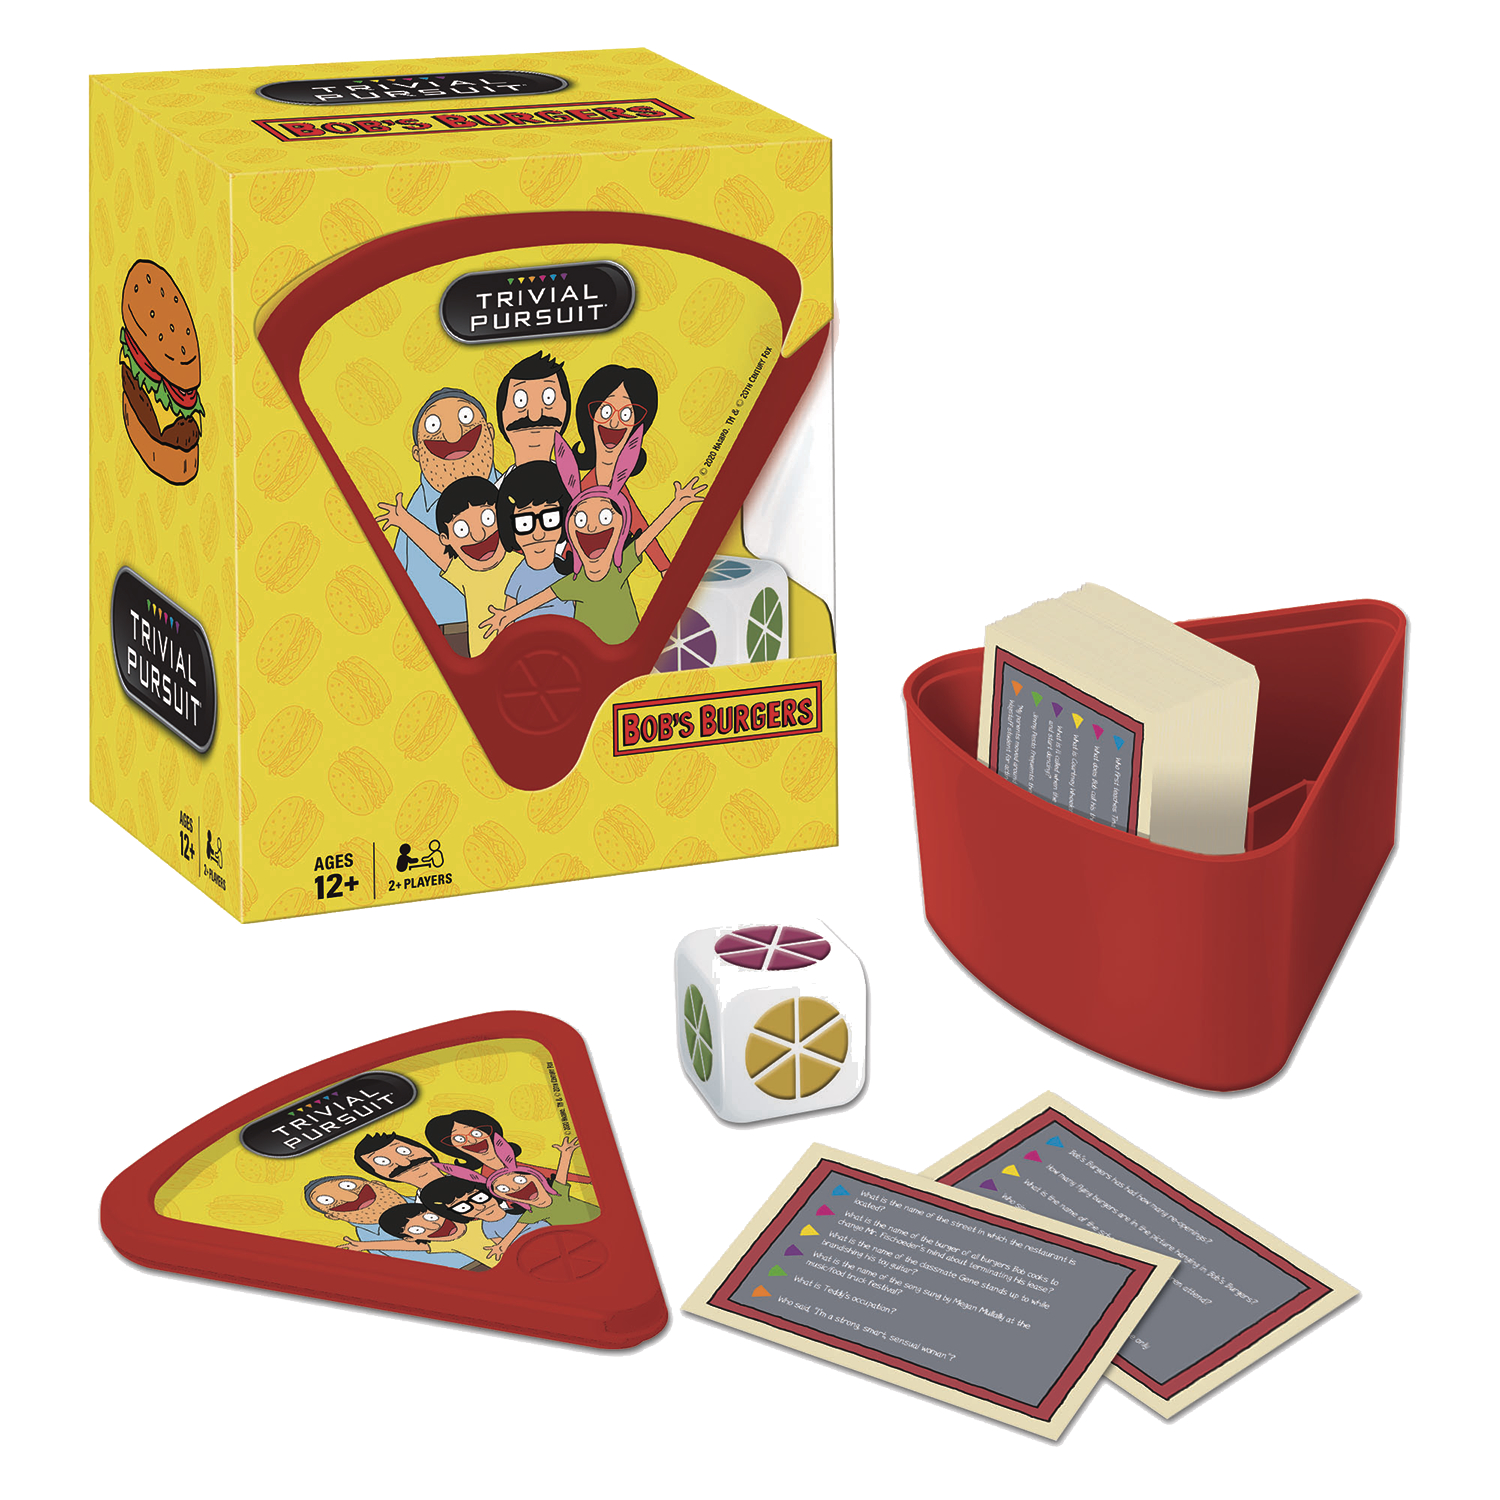 TRIVIAL PURSUIT BOBS BURGERS BOARDGAME